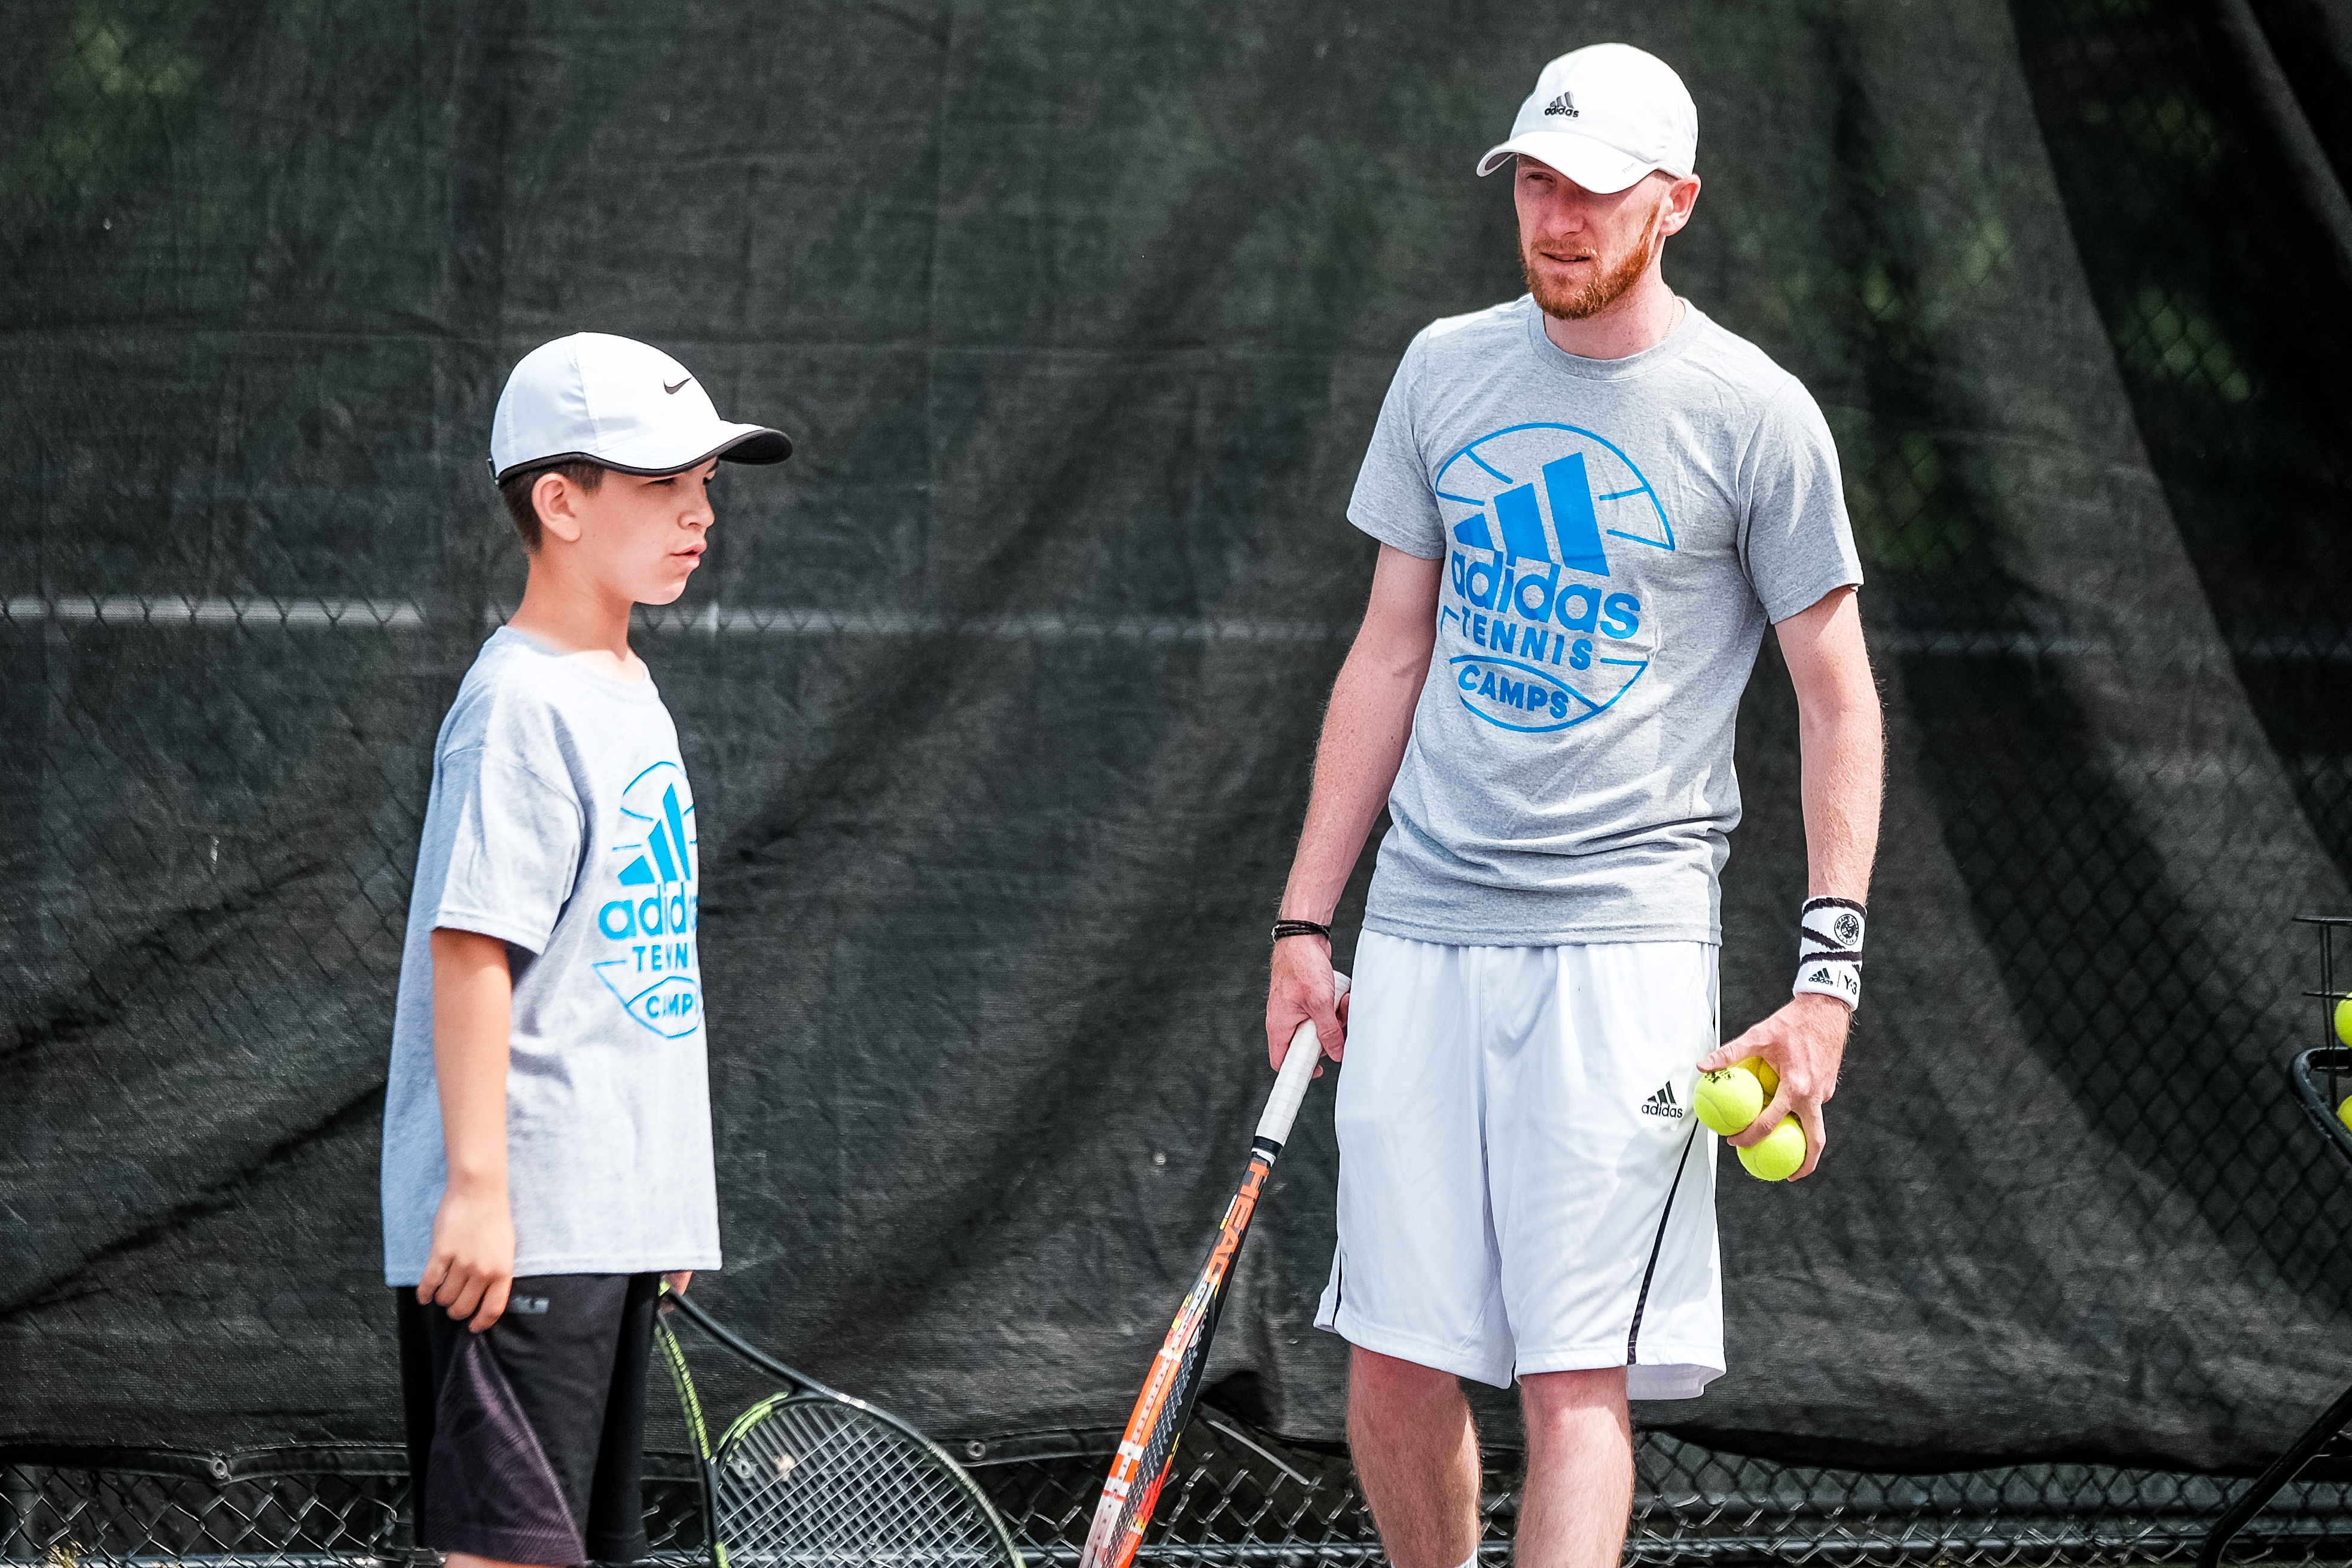 2 Simple Tennis Drills Kids Will Love